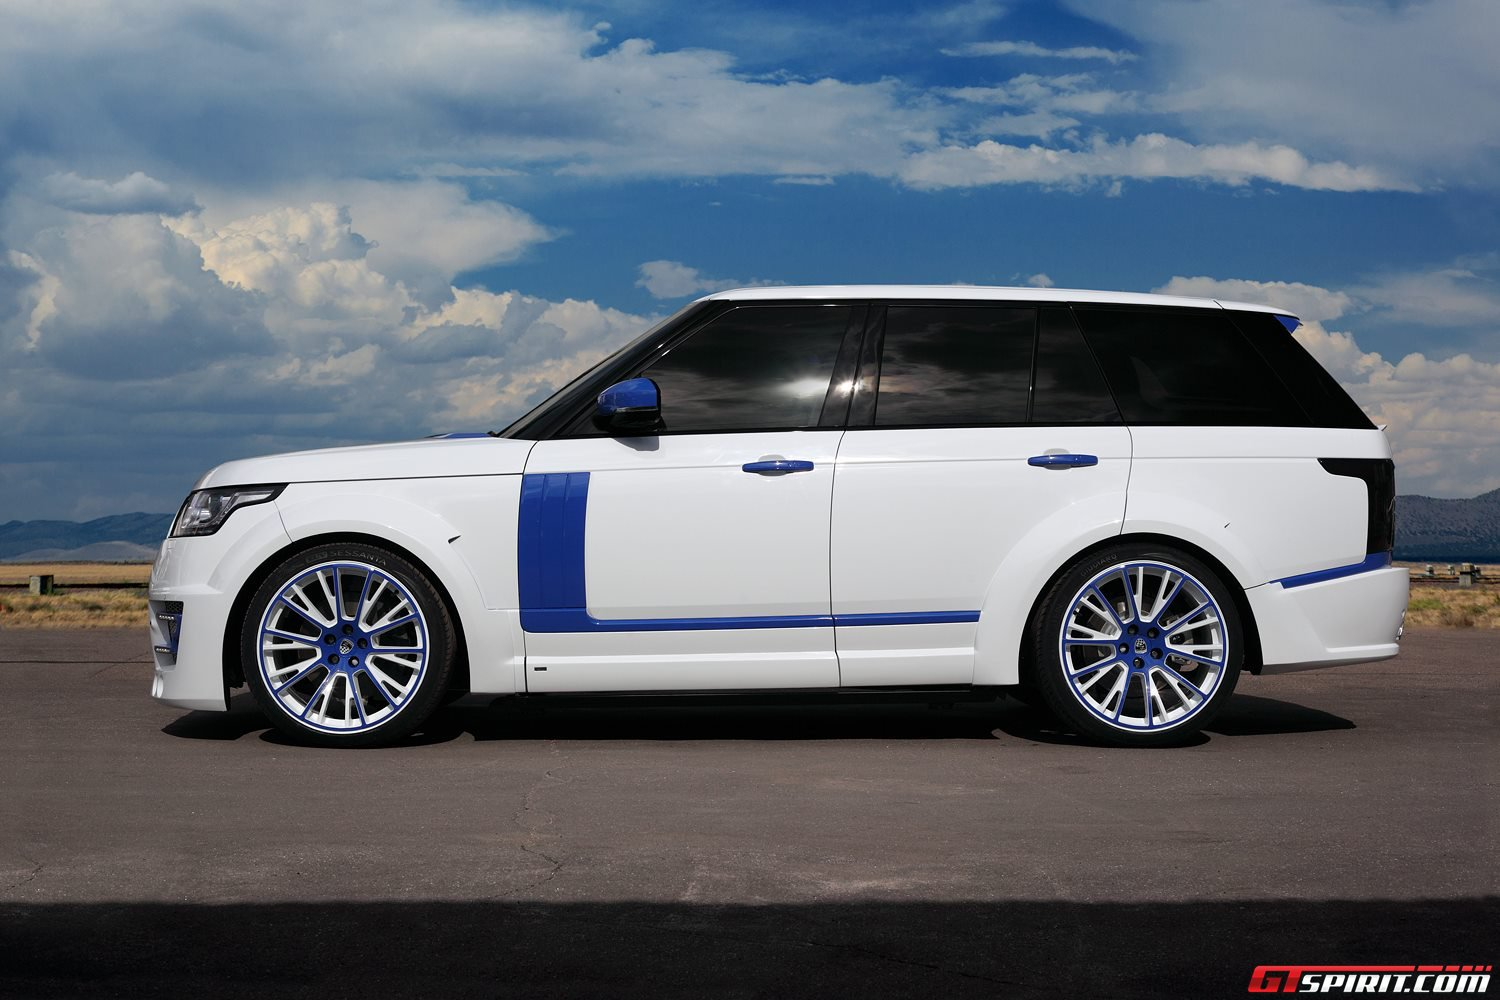 White Lumma Design Range Rover Vogue Clr R With Blue